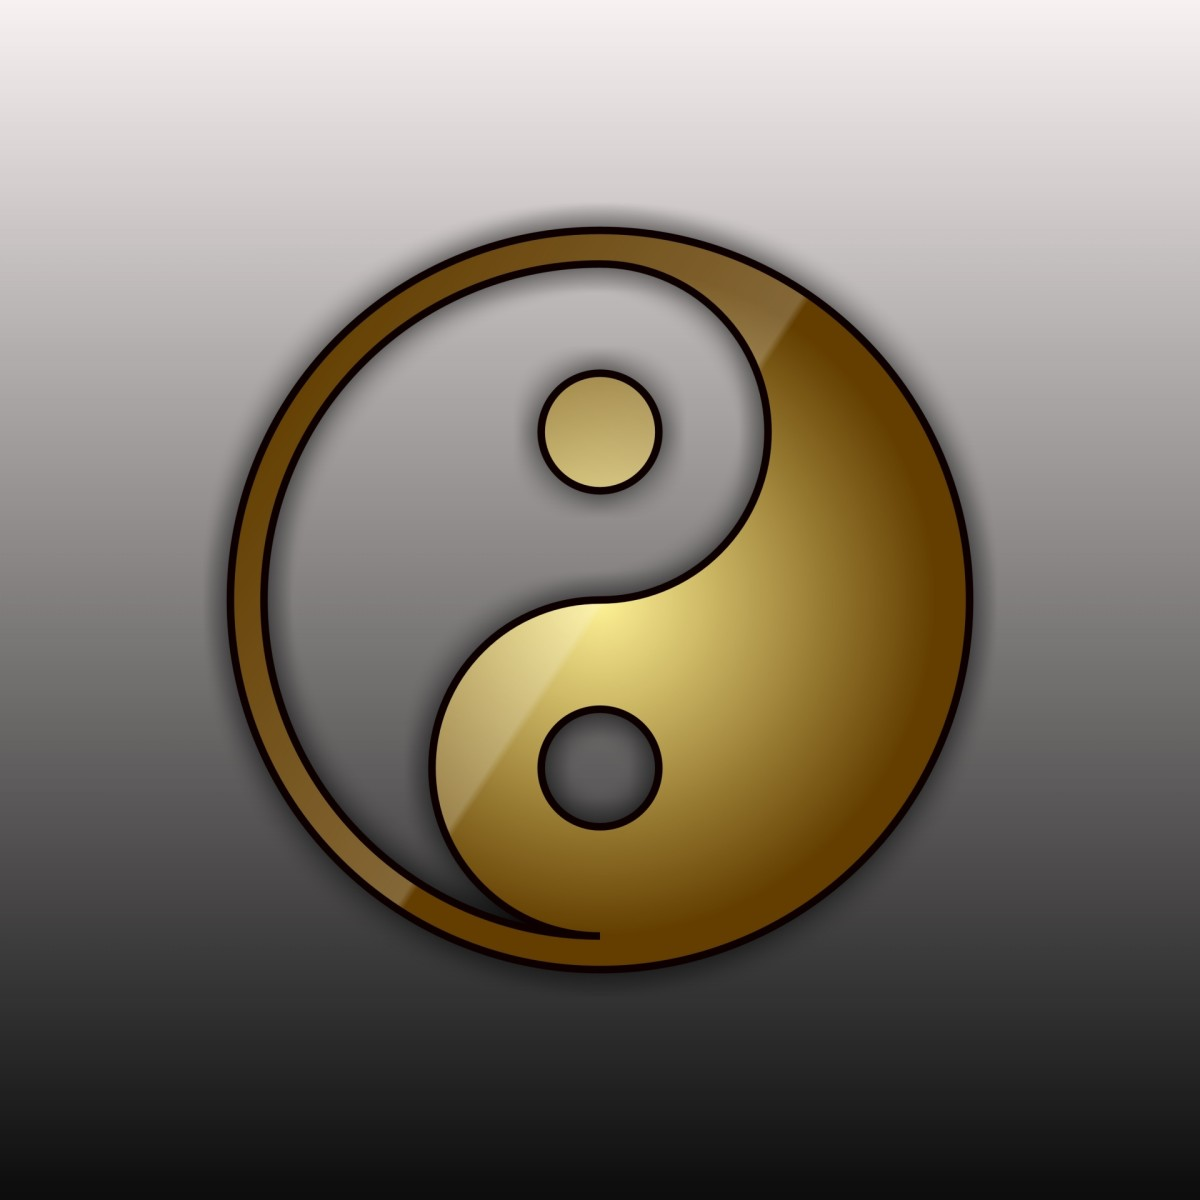 This ancient symbol portrays the peace that comes from resolution of paradox.